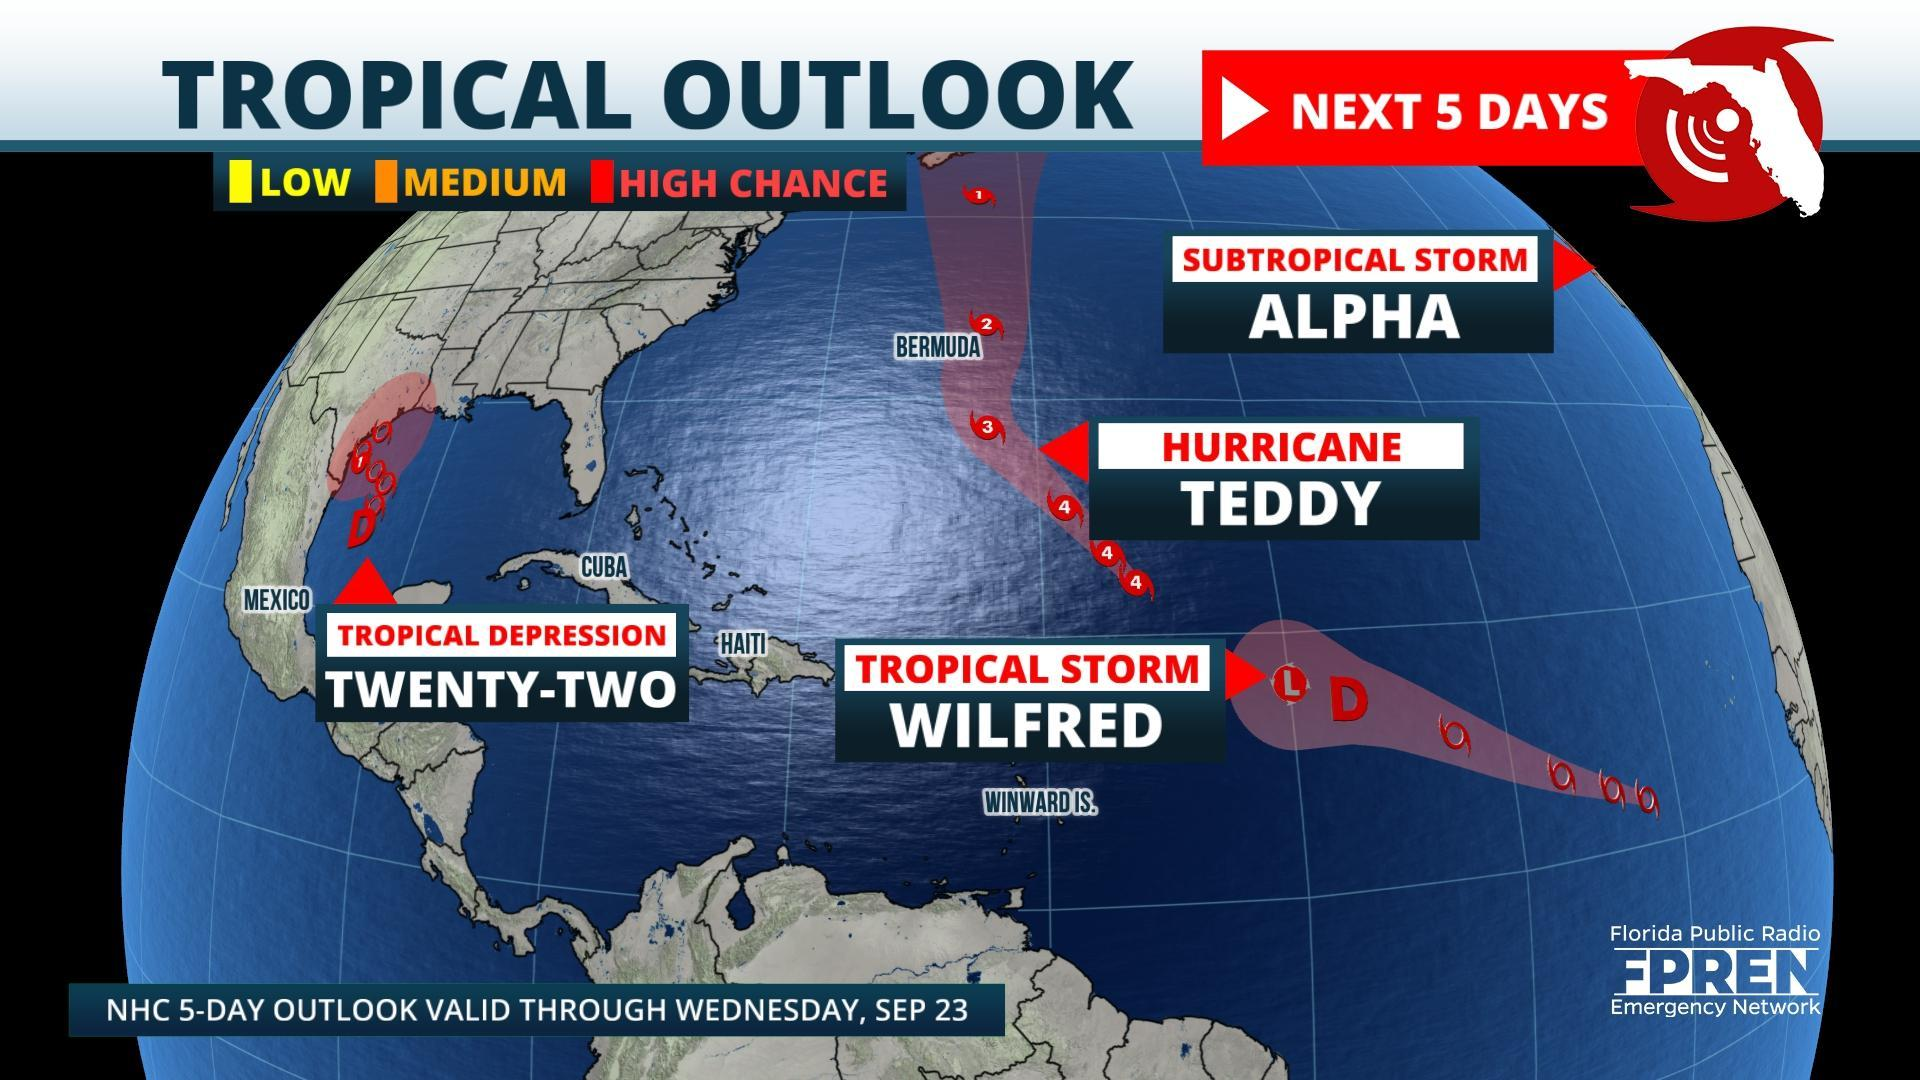 Three New Tropical Systems Form In Past 24 Hours Greek Alphabet Invoked Wjct News